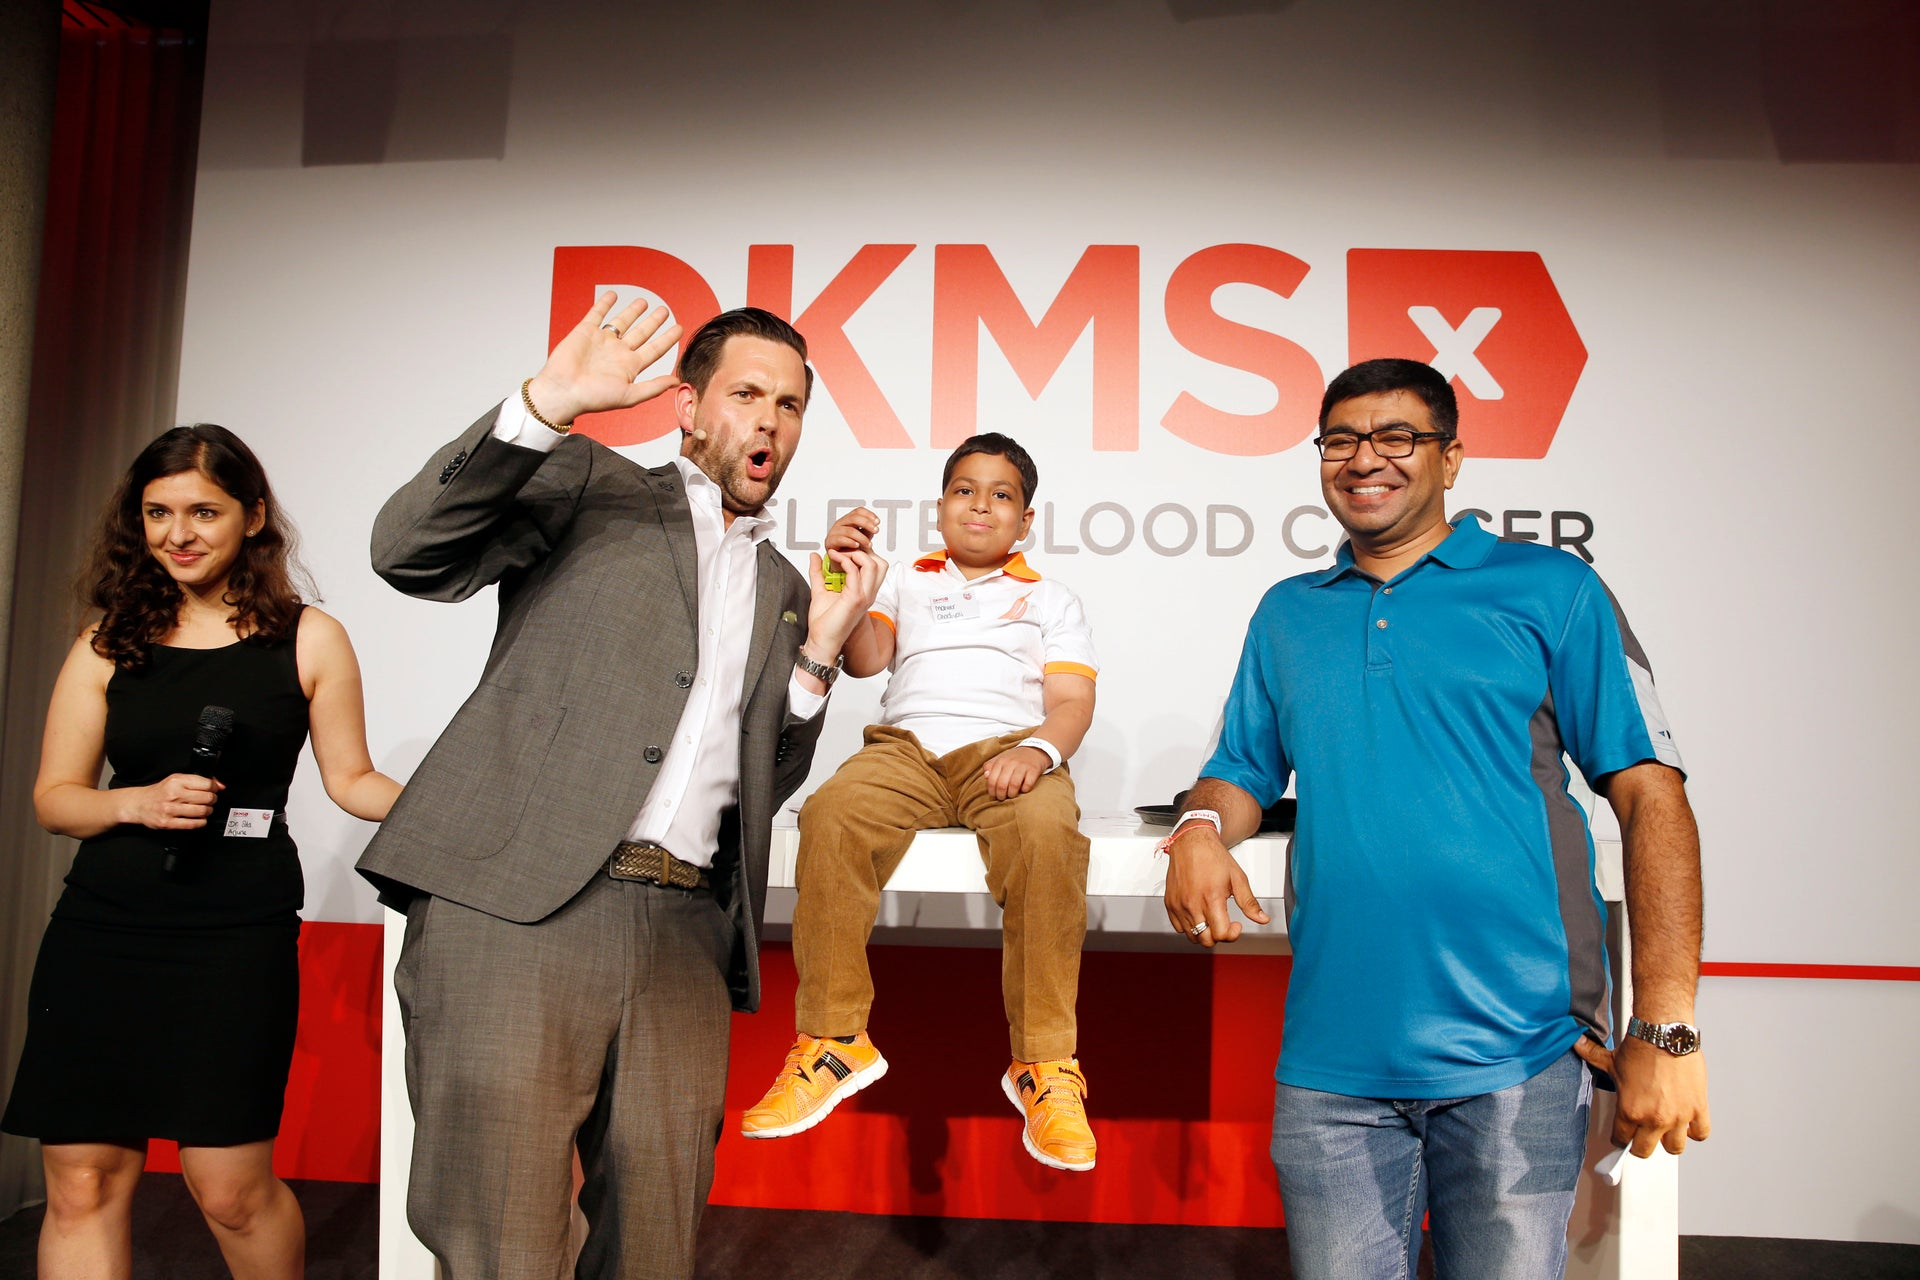 Four people in front of the DKMS logo smiling and cheering